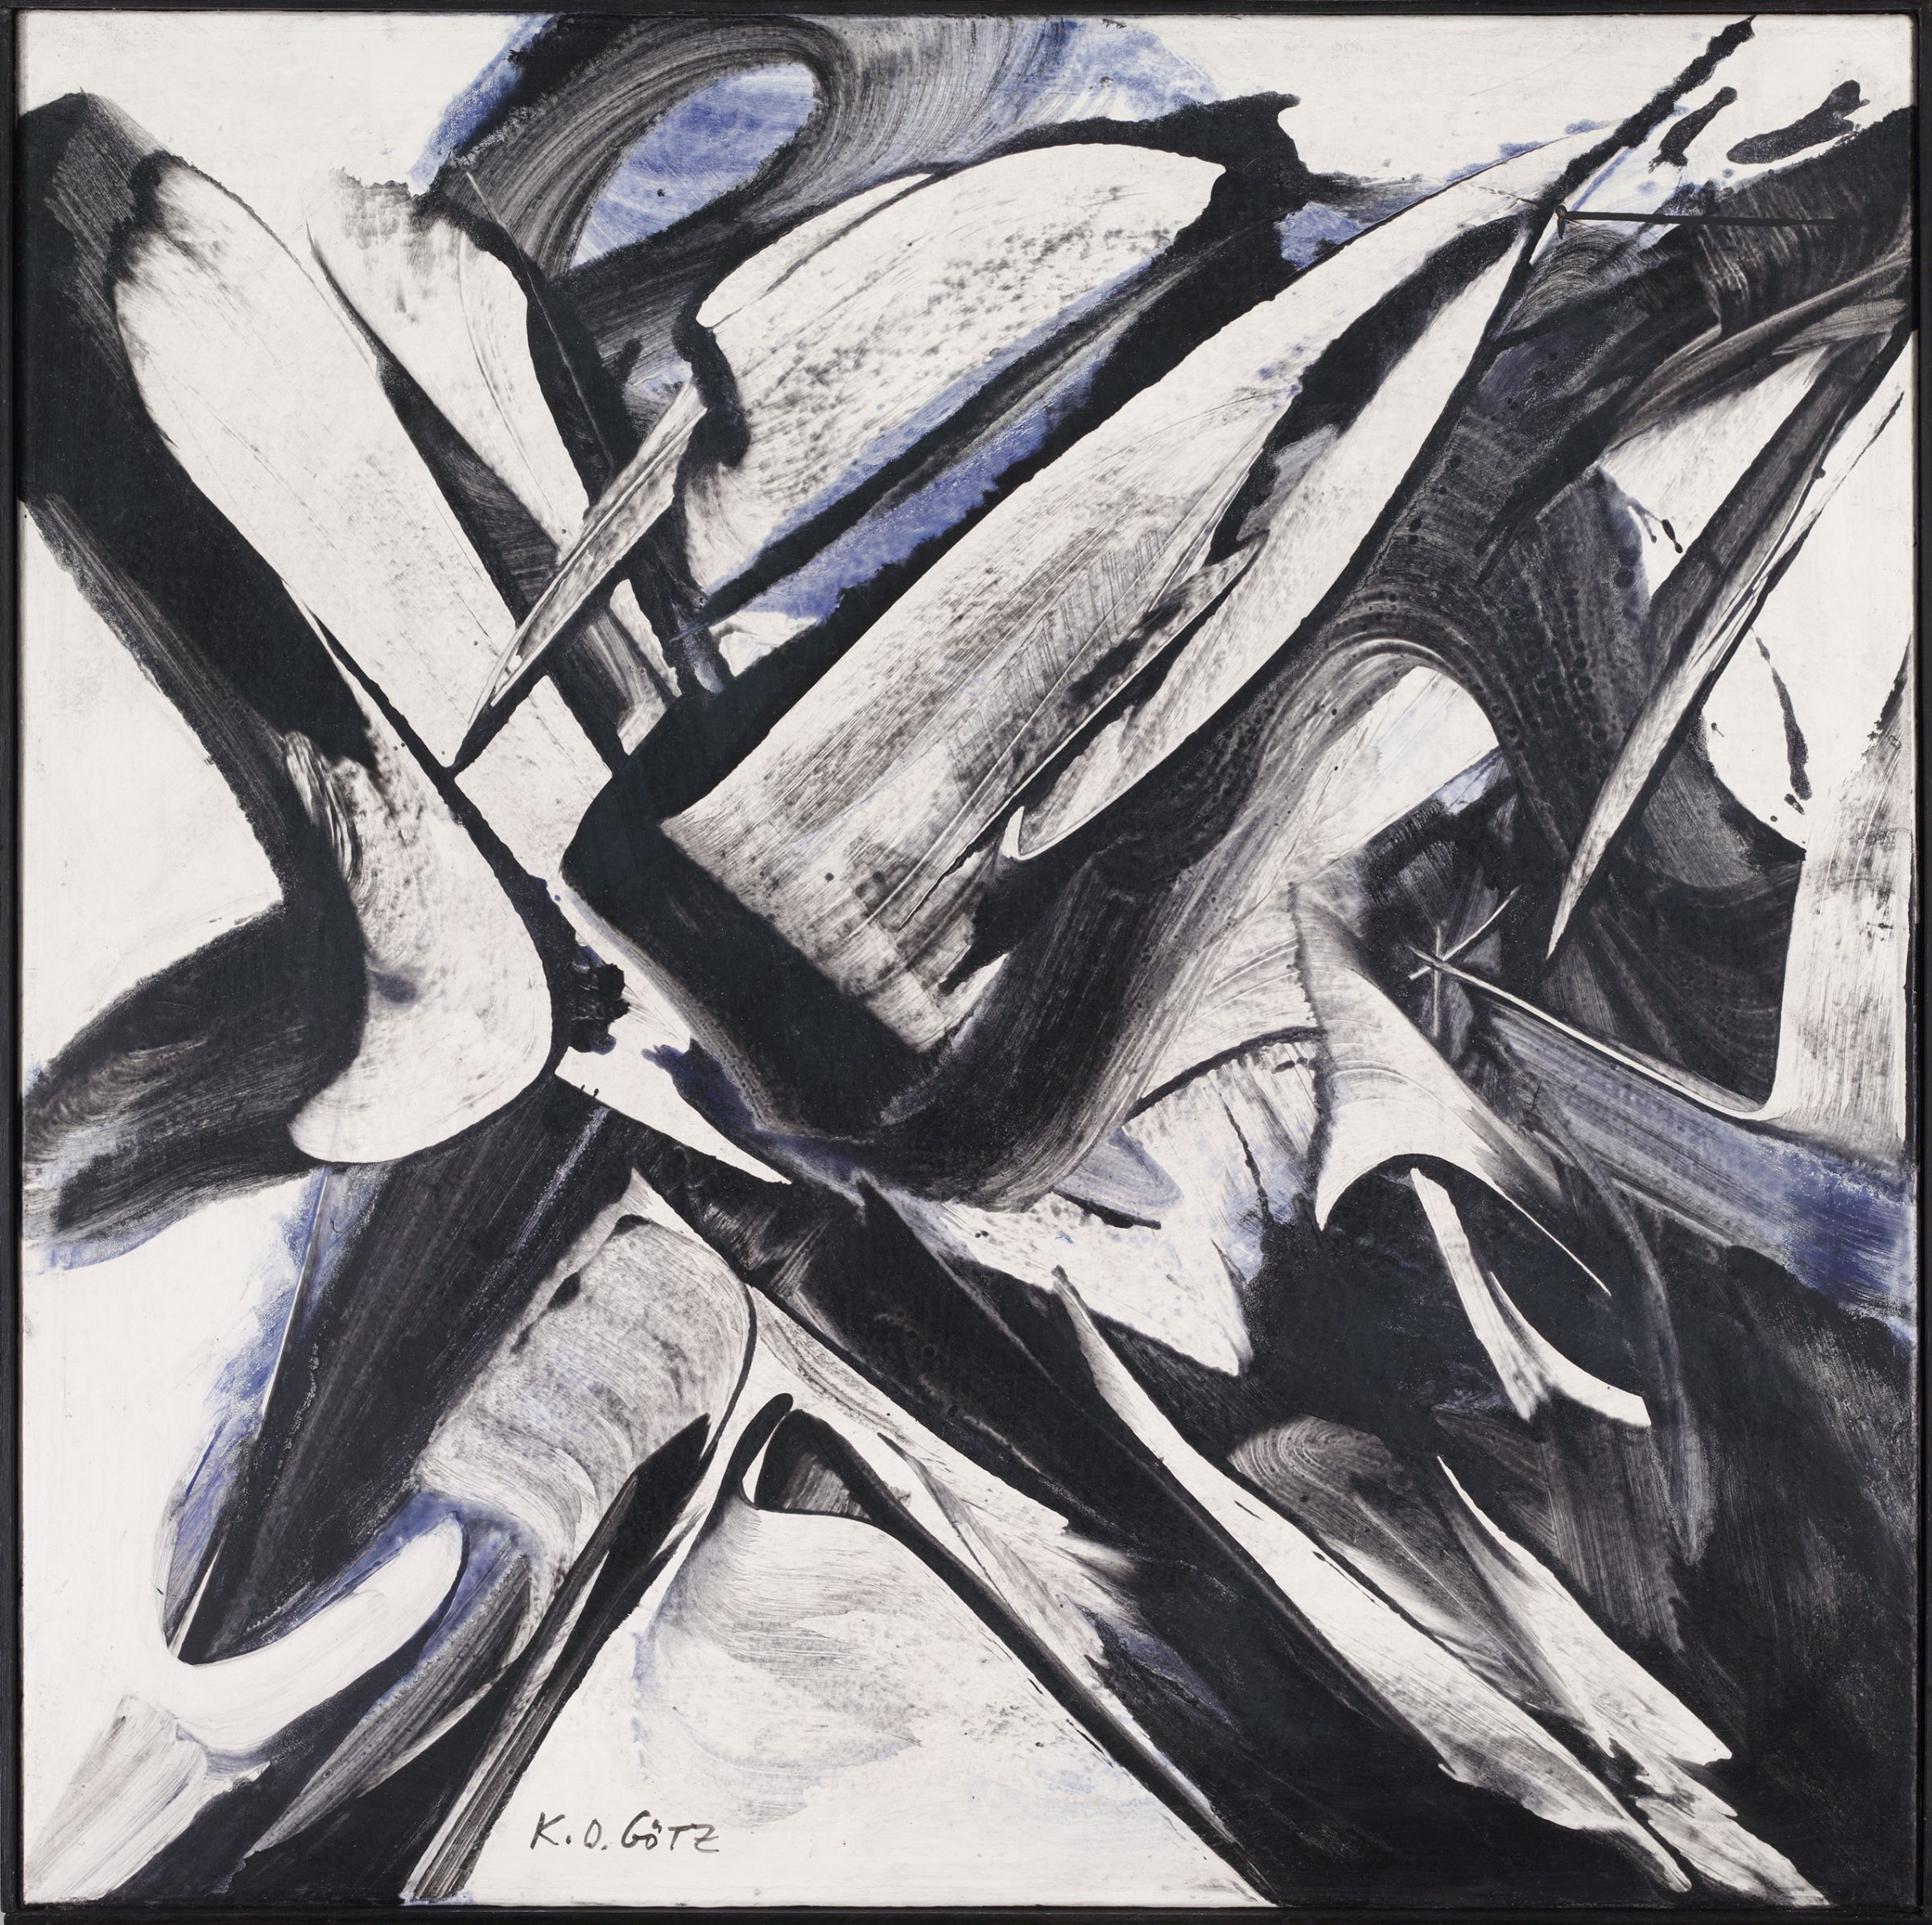 K. O. Götz, June 1954/II, 1954. Wallpaper paste and casein paint on canvas. Harvard Art Museums/Busch-Reisinger Museum, Anonymous gift, 2012.200.